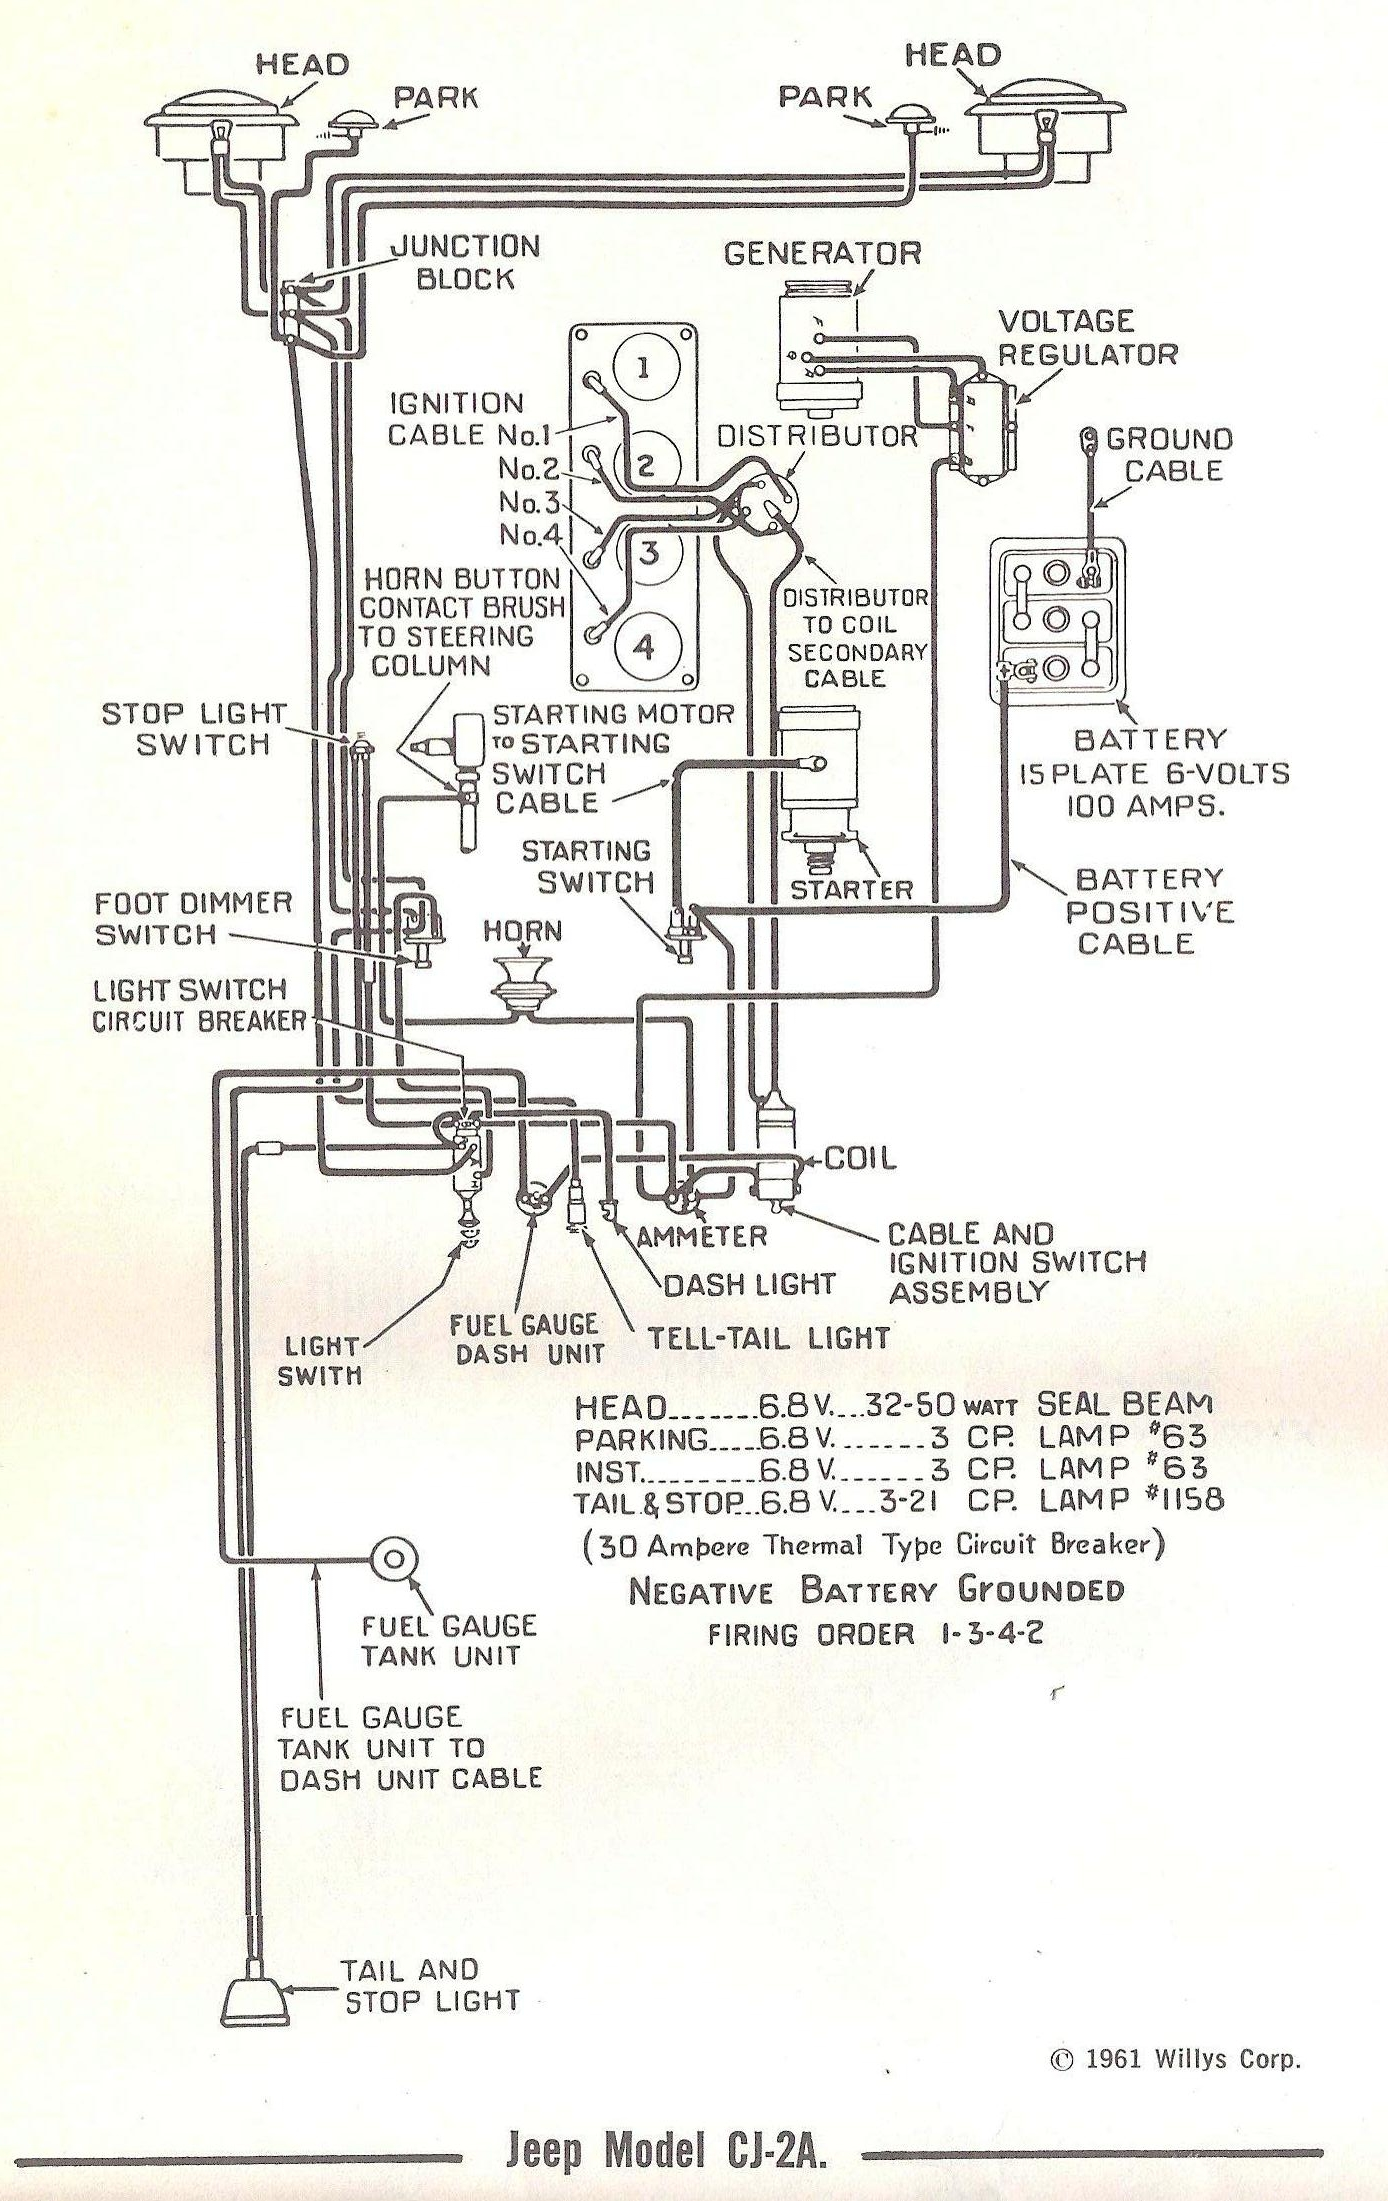 1946 willys jeep wiring diagram 1949 willys jeep wiring diagram #11